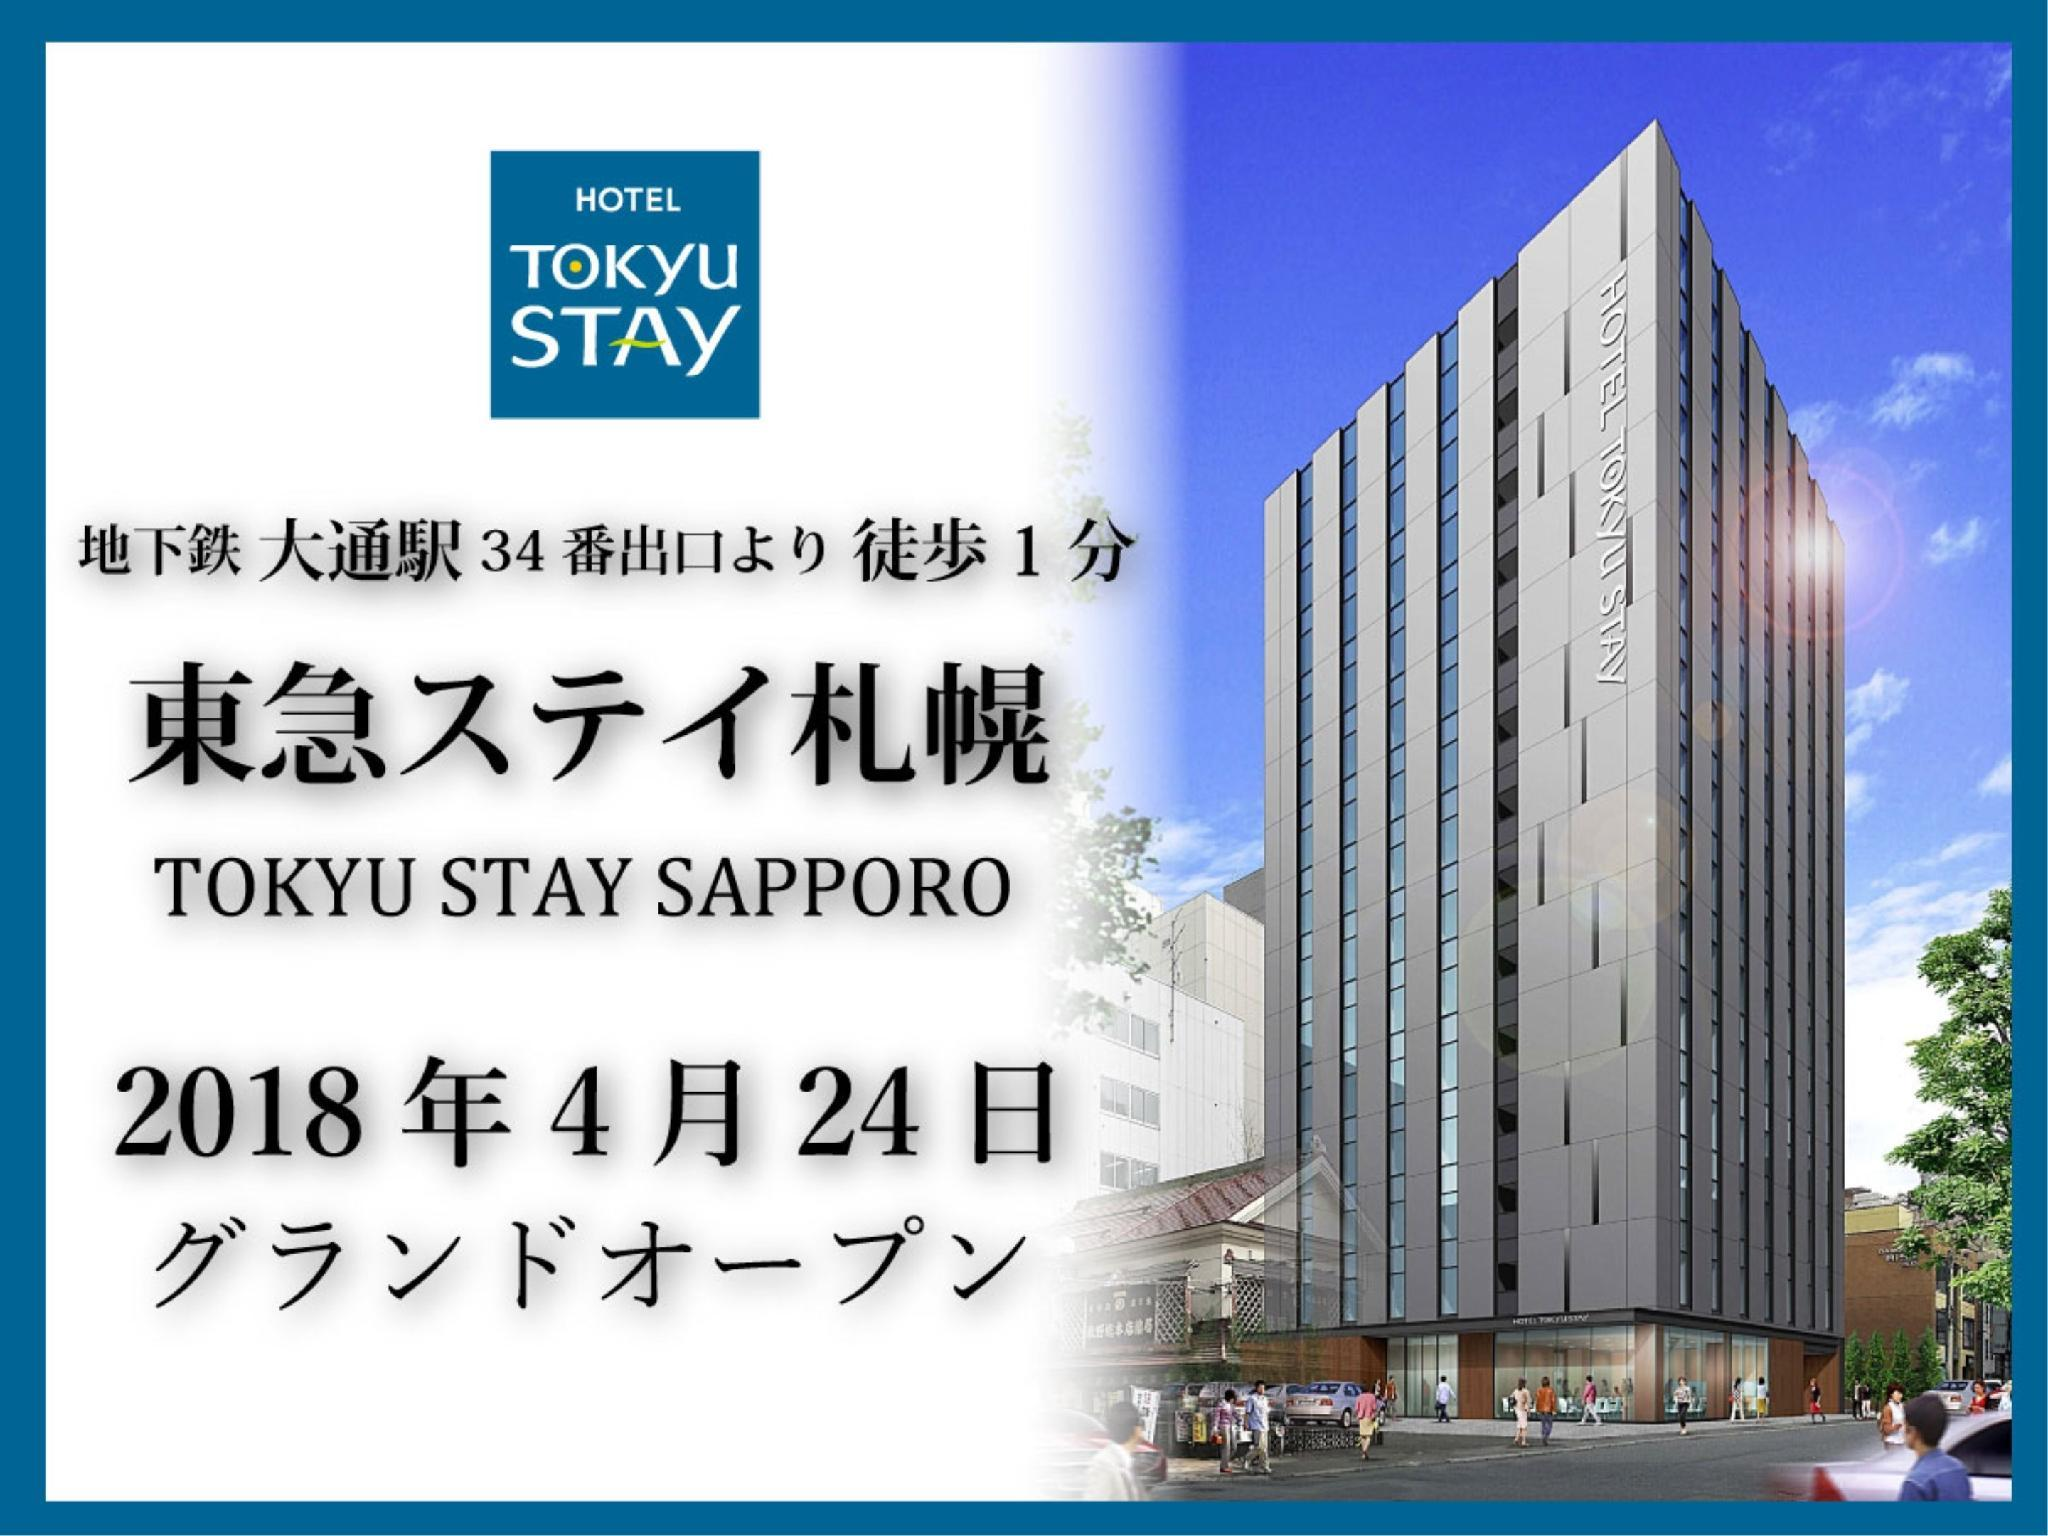 트윈룸 (Stay Premier Twin Room)